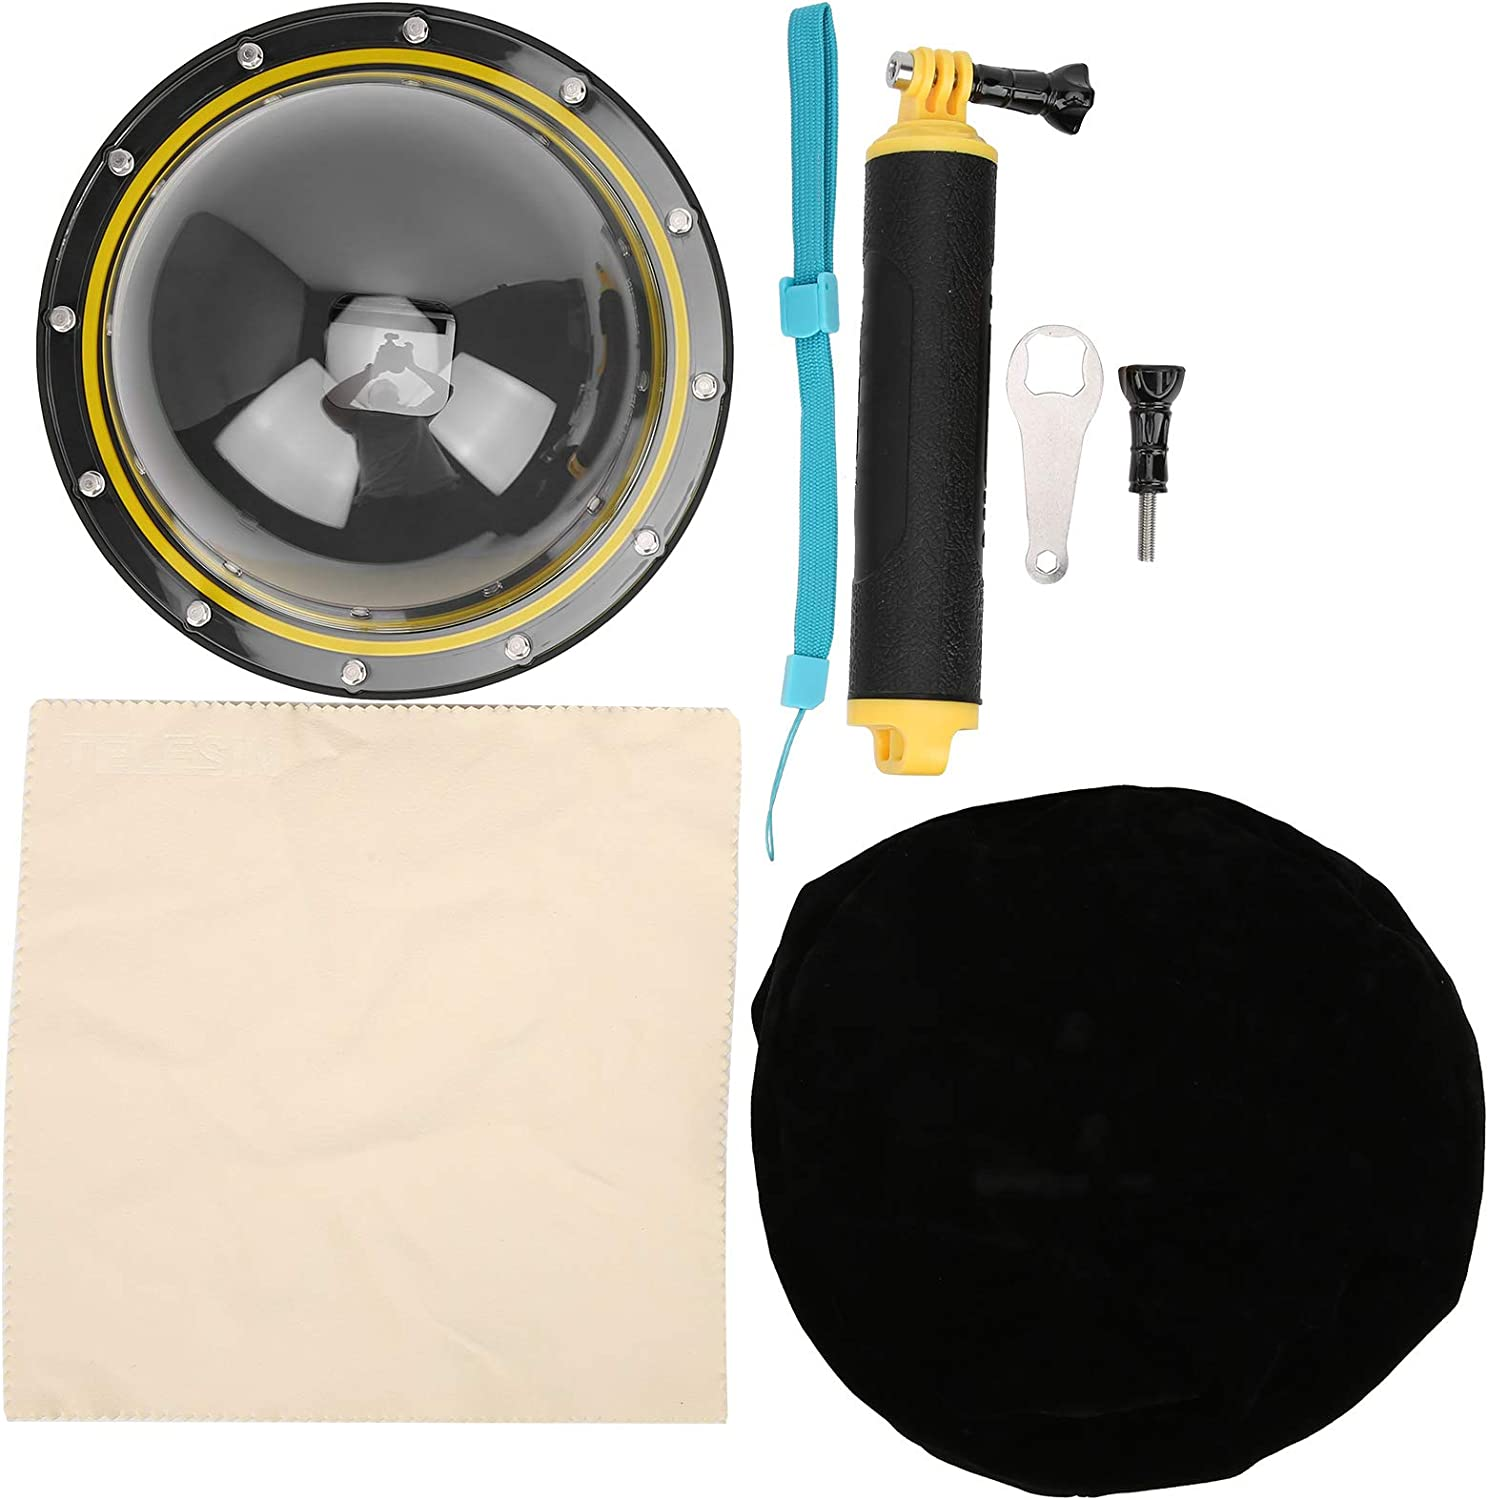 QYSZYG Waterproof Diving Cover Water Genuine Free Shipping Manufacturer OFFicial shop Surface 30M Lens